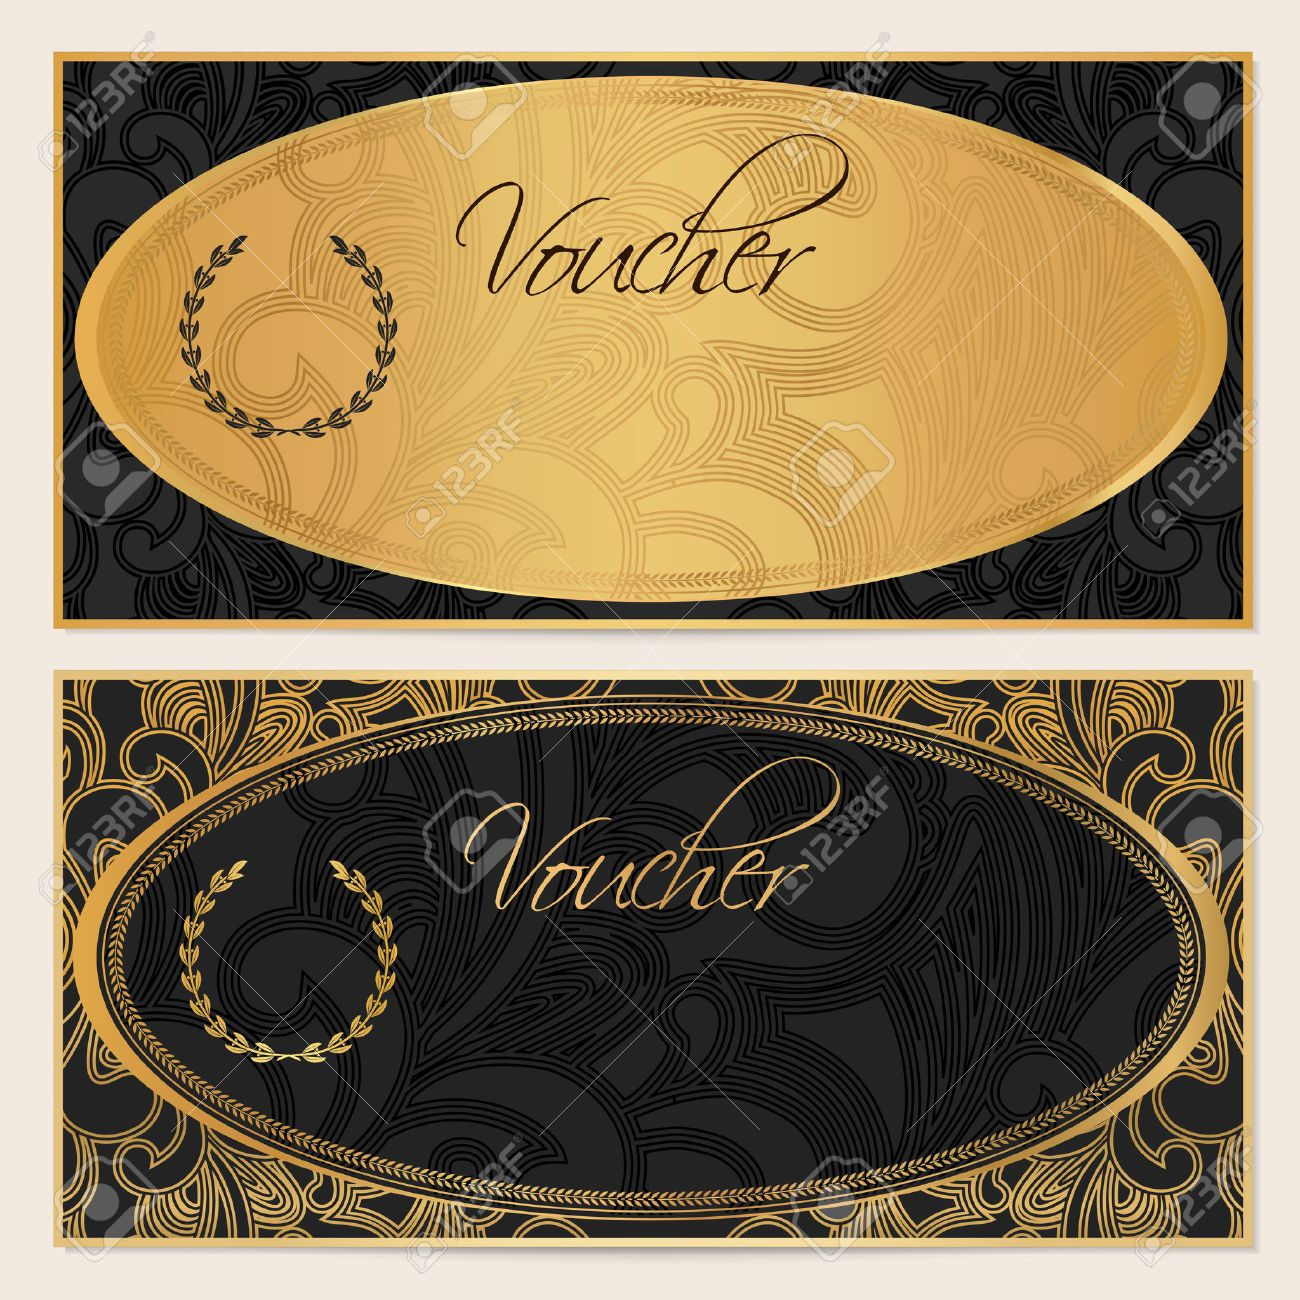 Voucher gift certificate coupon template floral scroll pattern coupon template floral scroll pattern gold ellipse frame black background design for invitation ticket banknote money design check cheque vector stopboris Gallery